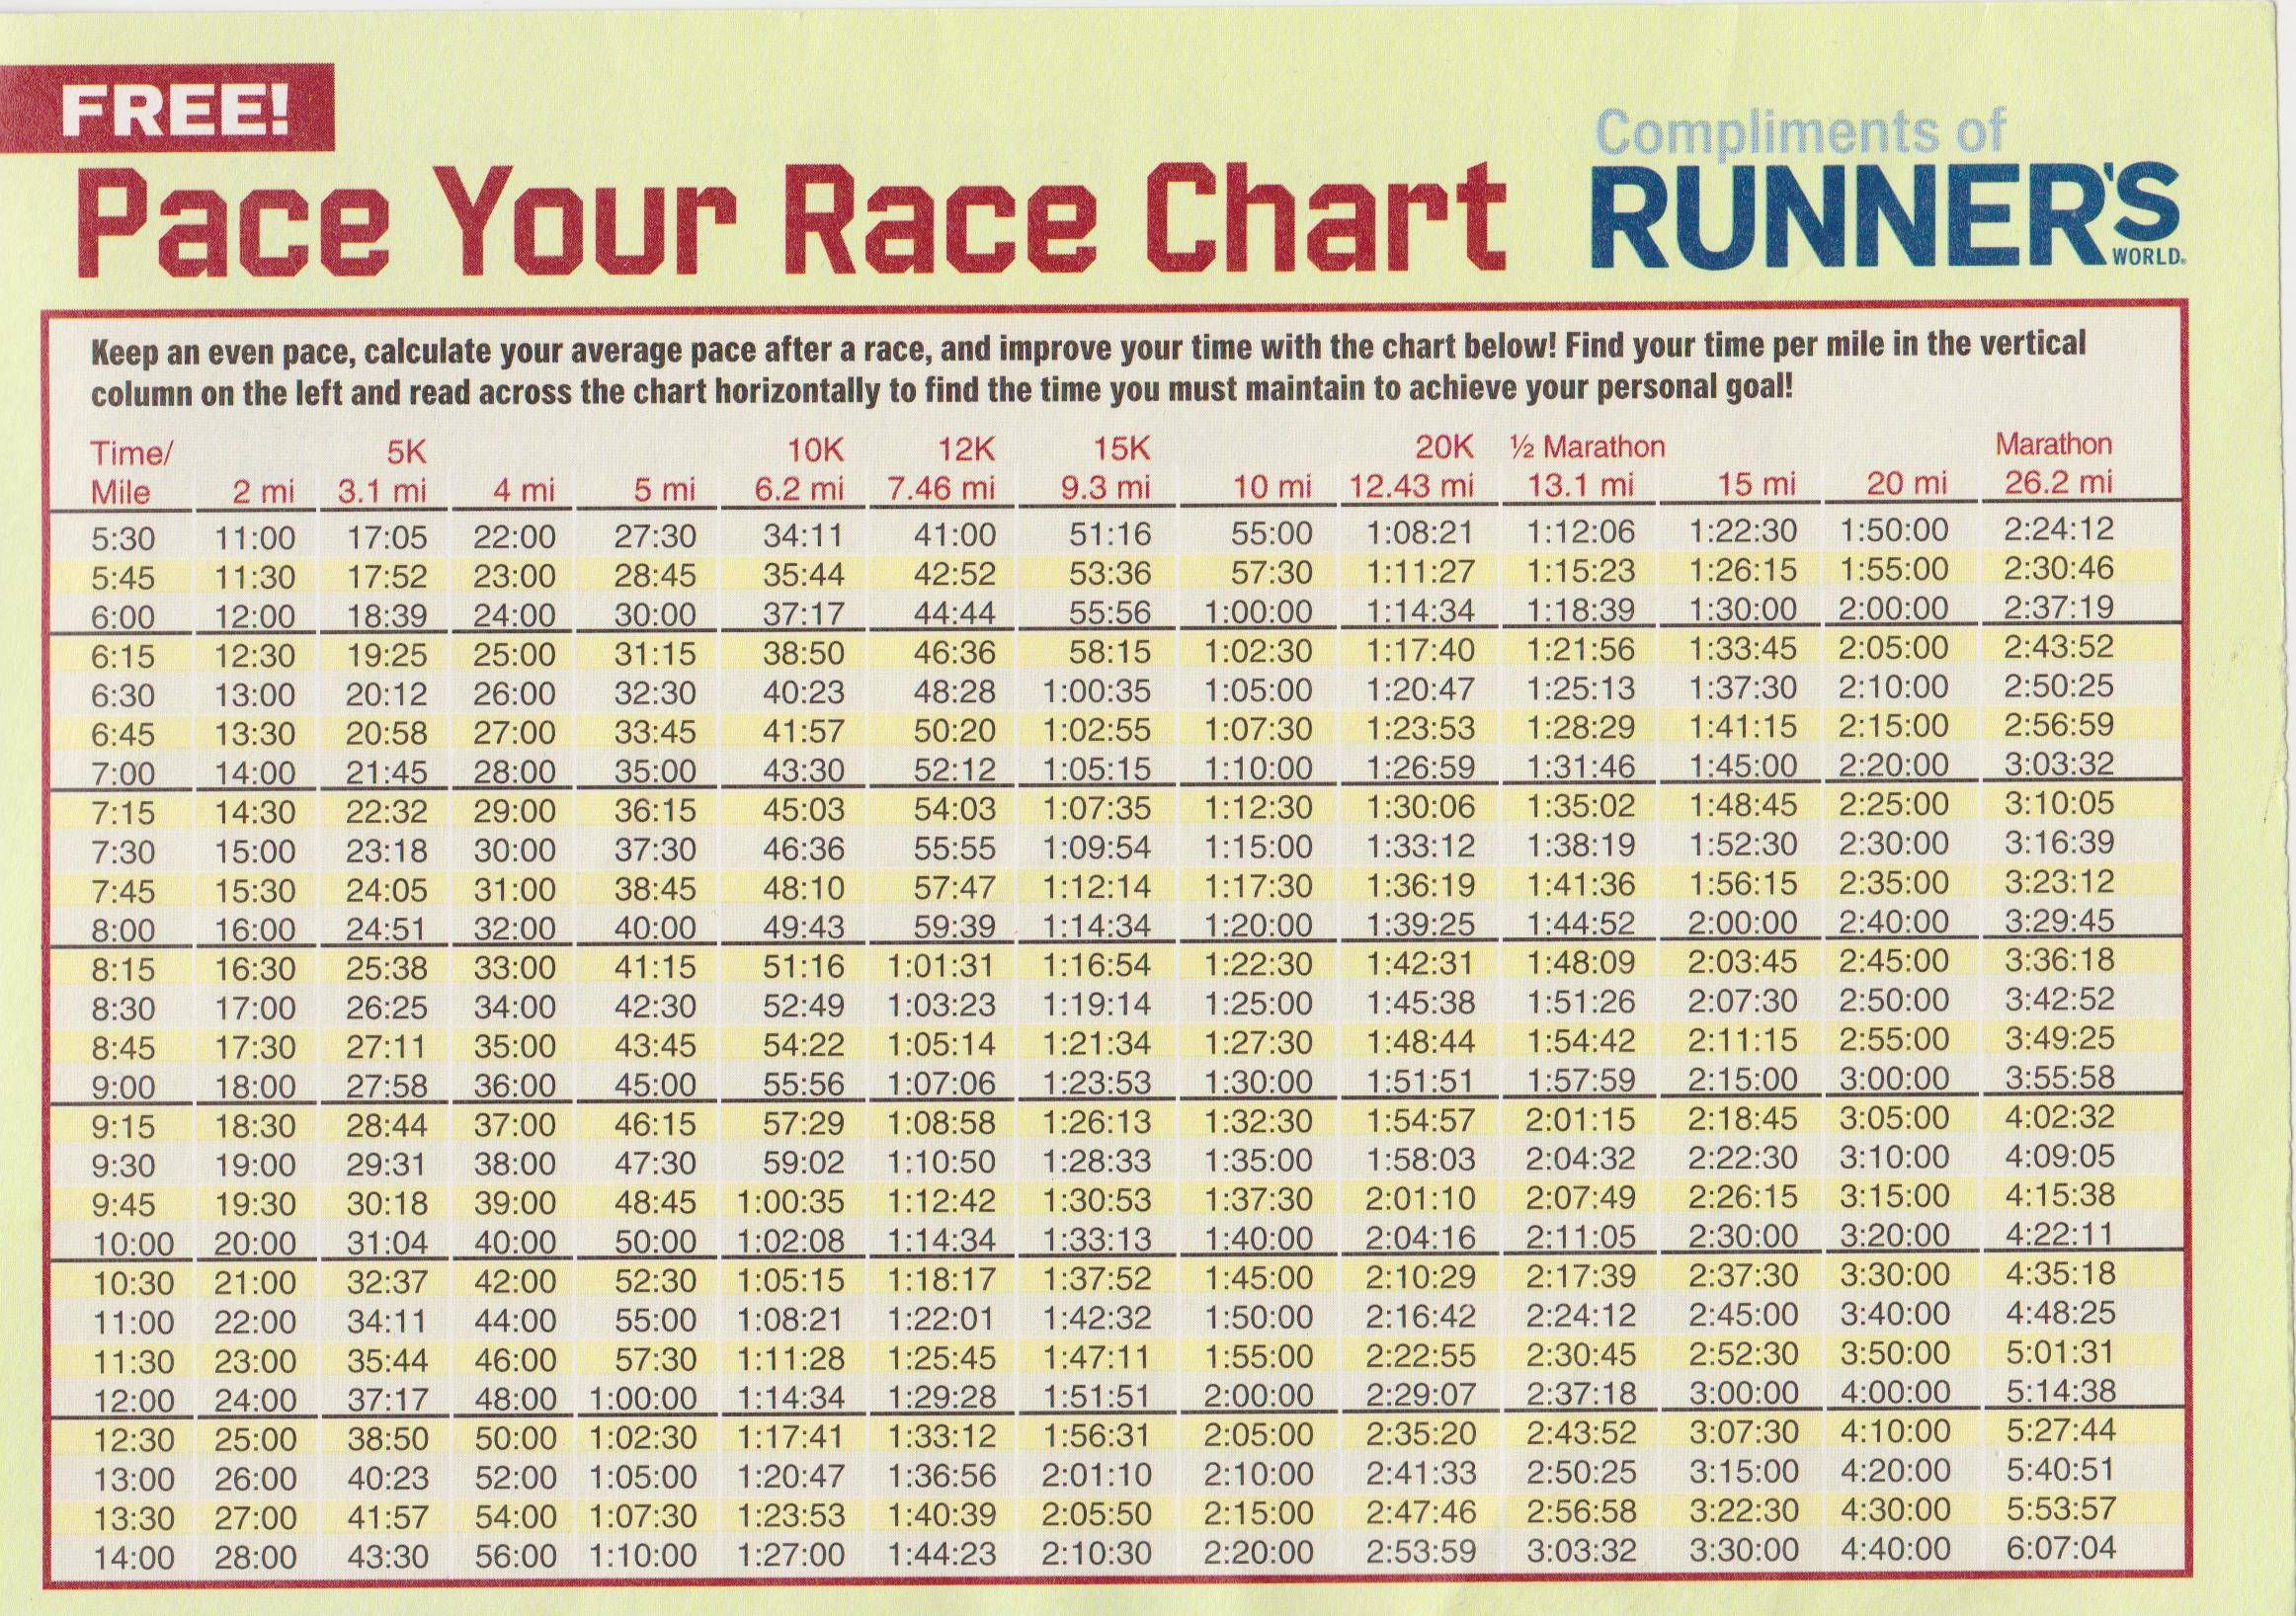 Marathon Pace Chart  Google Search  Runner Girl